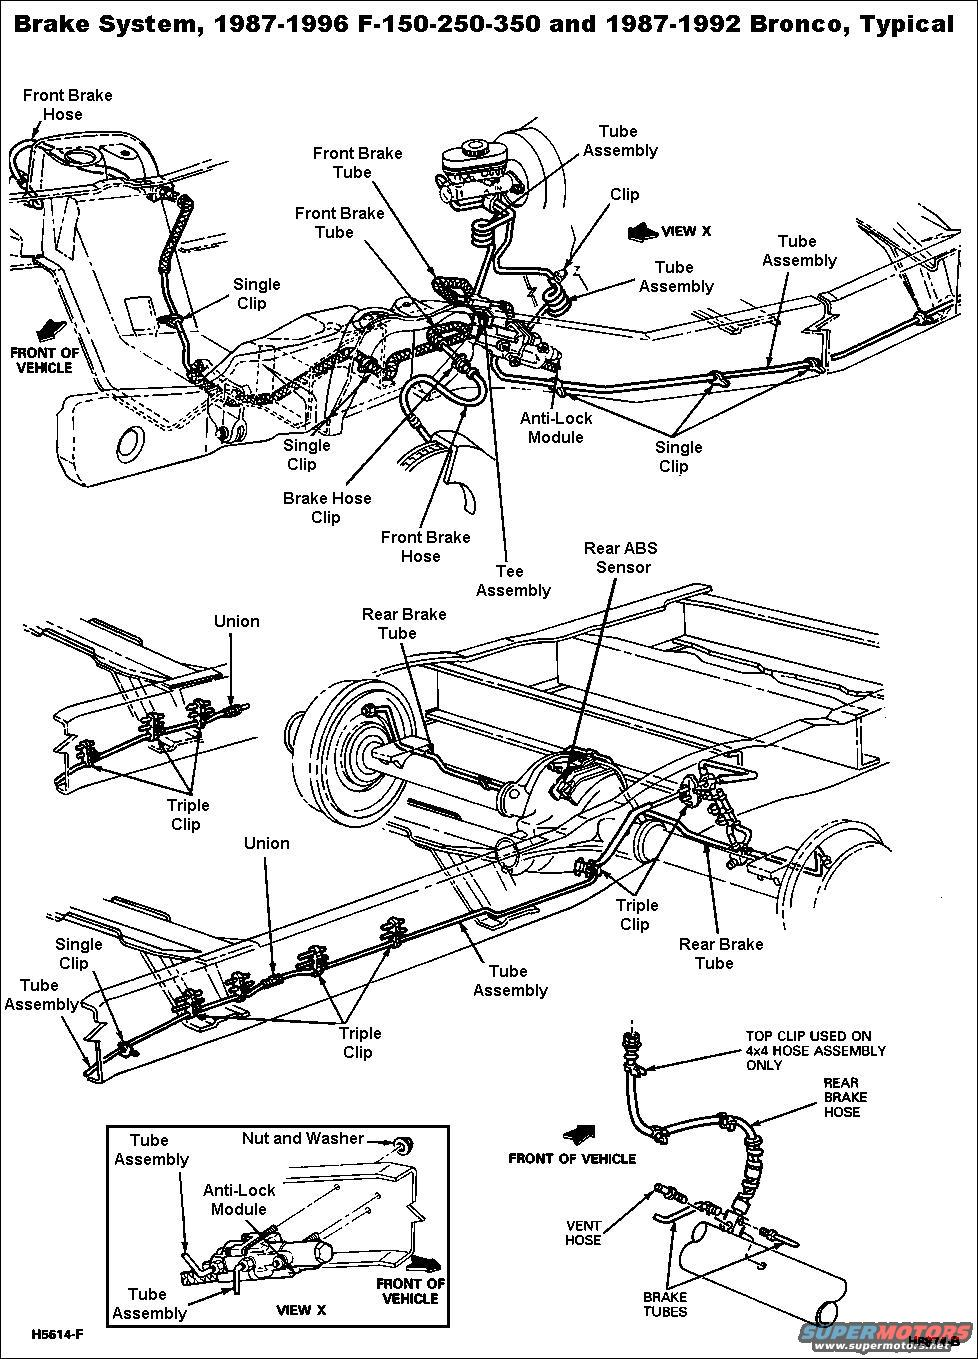 Ford taurus brake line diagram on wiring diagram for allison transmission the 2